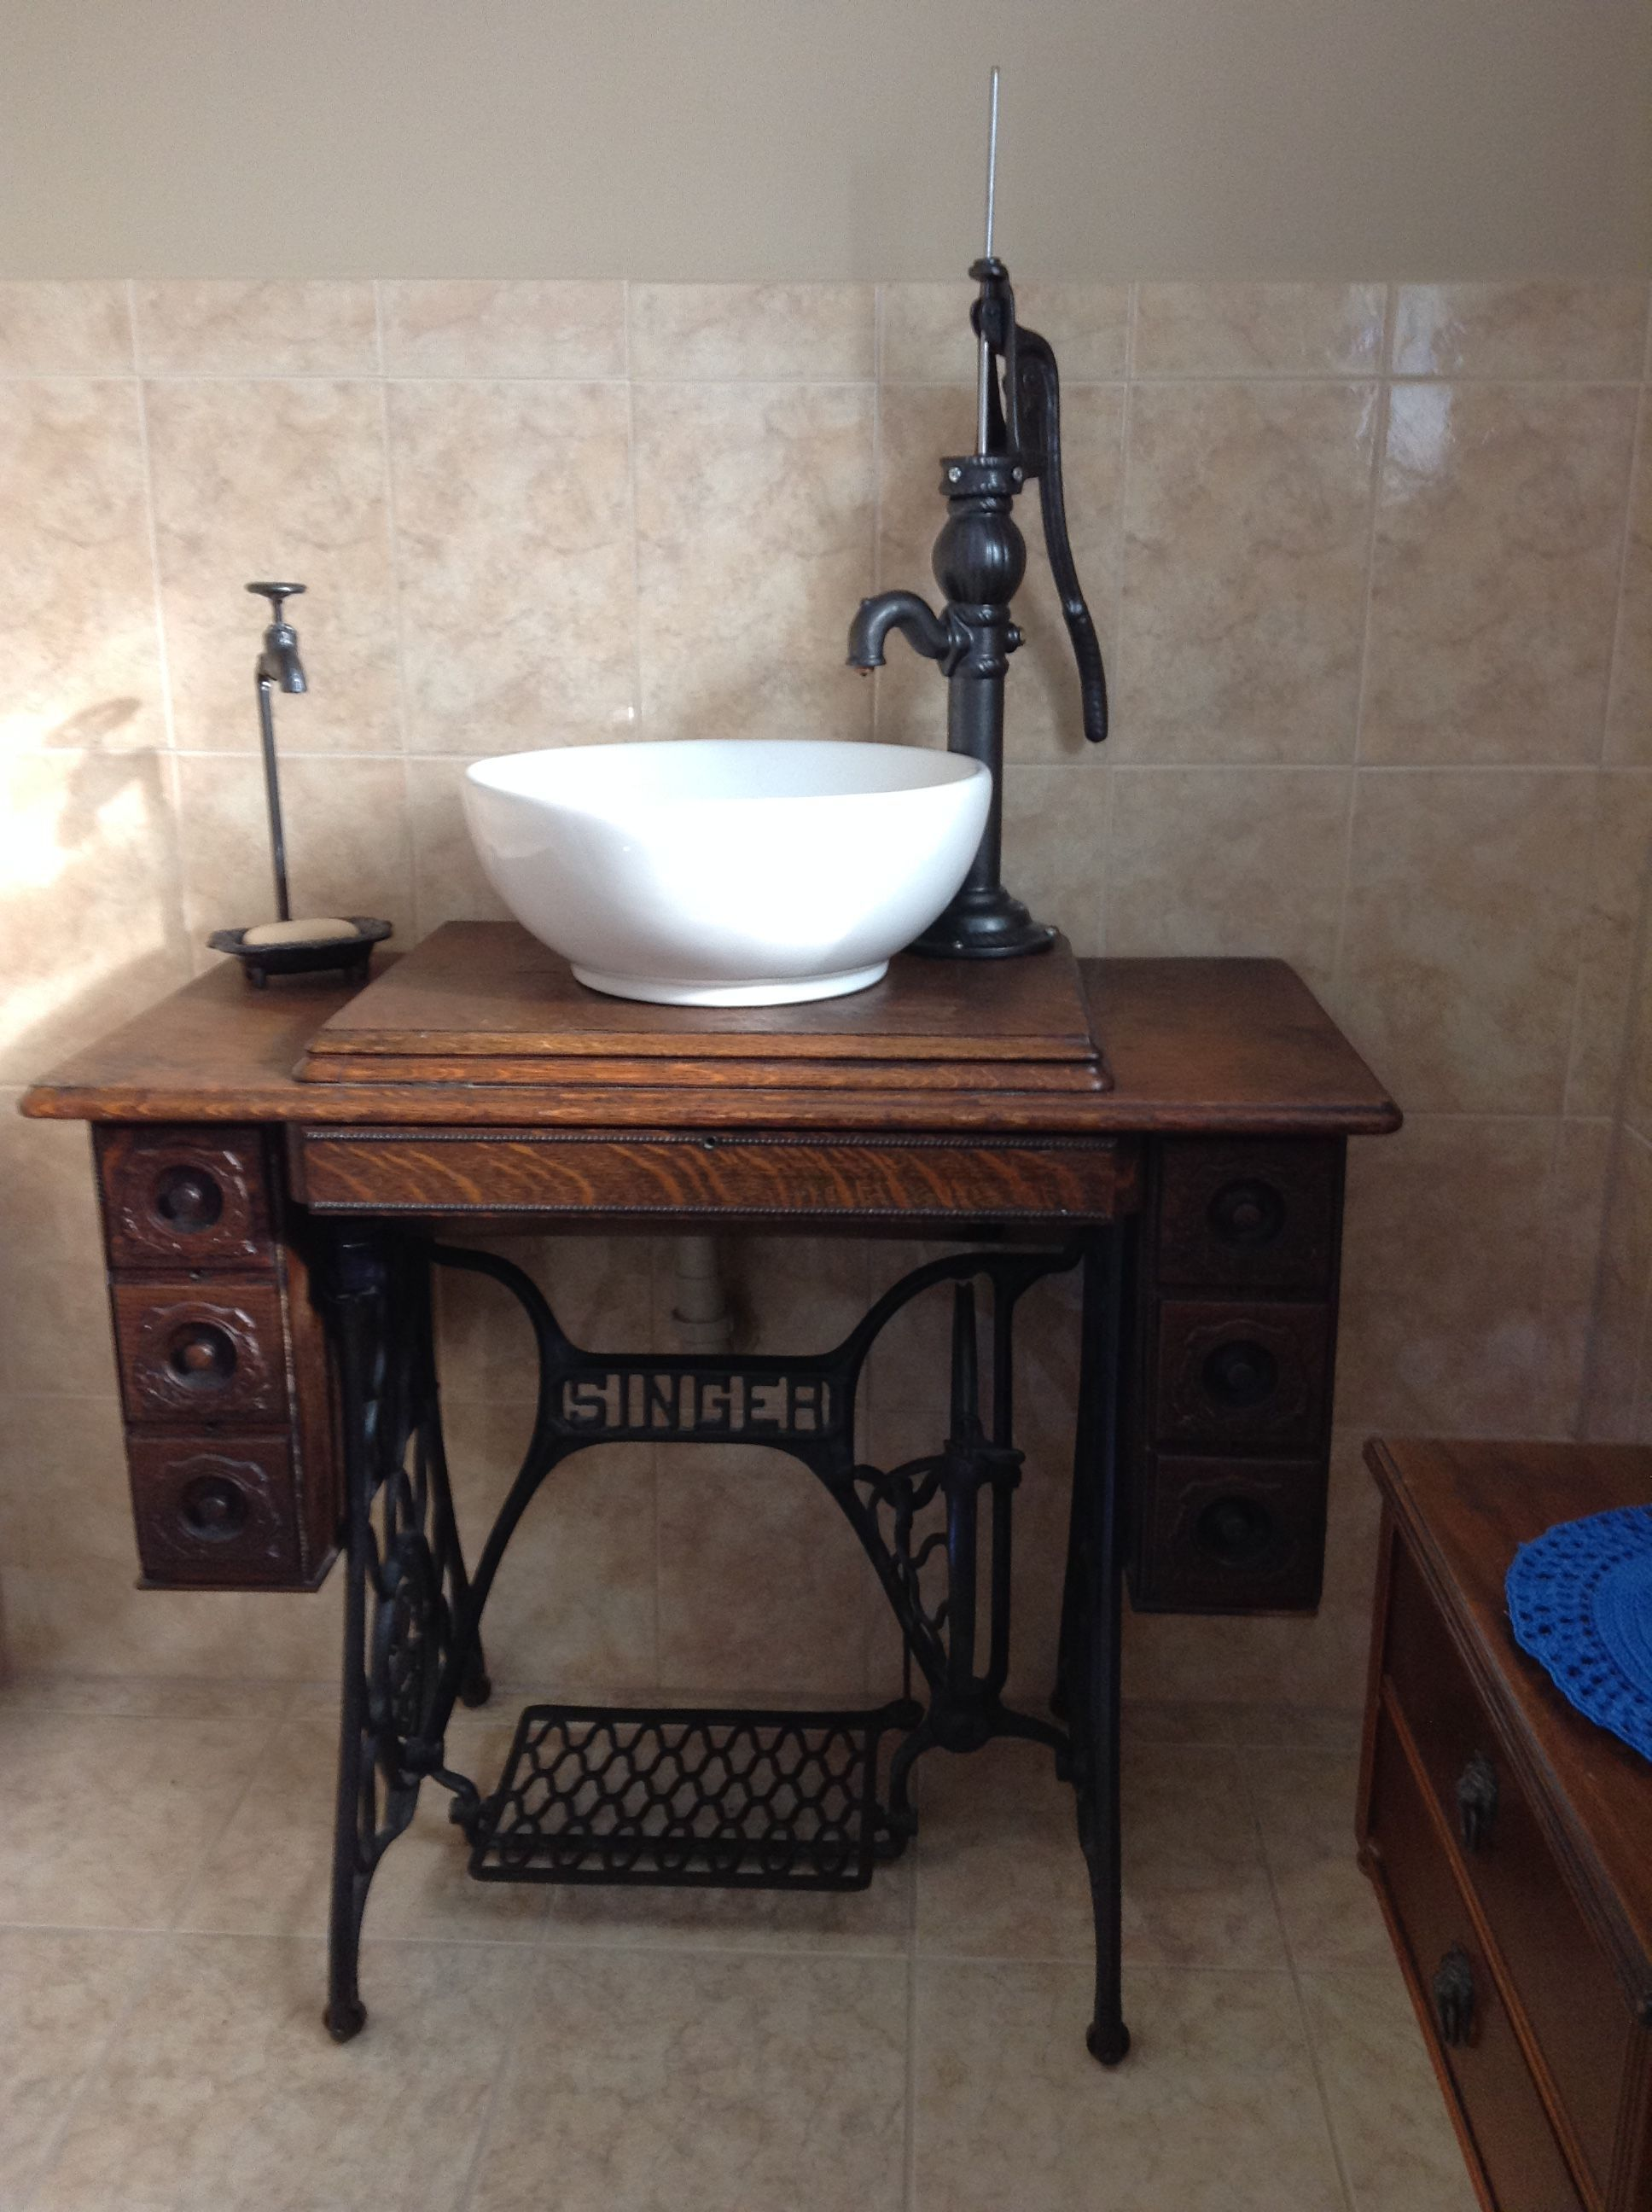 Robin S Singer Treadle Vanity Sink Vanity Made With Electronic Valve For Turning Water On And Off St Cheap Bathroom Remodel Diy Bathroom Bathrooms Remodel